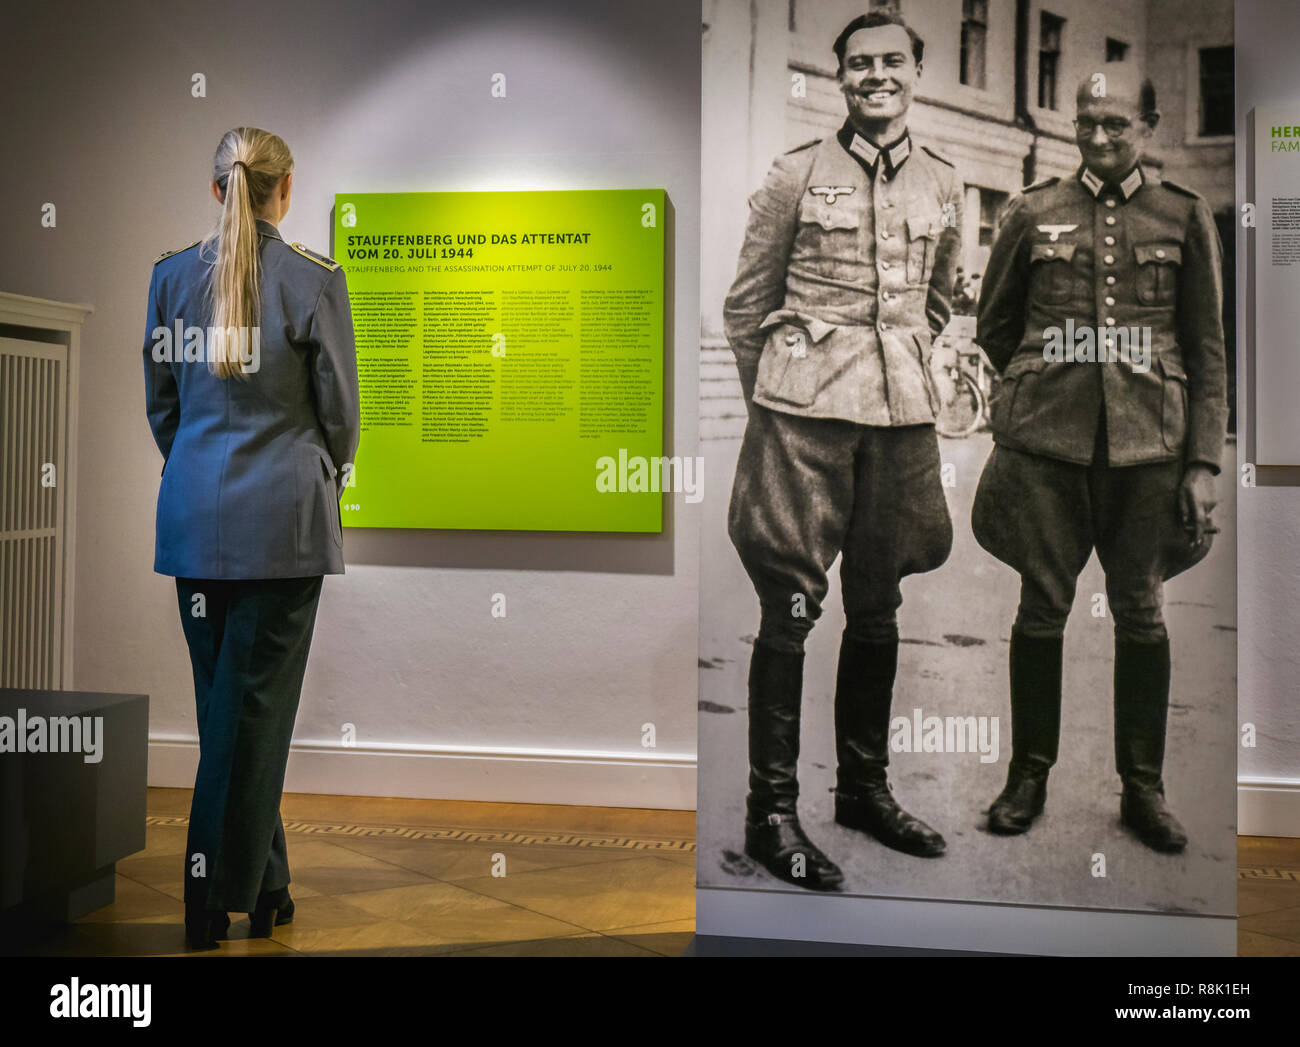 Commissioned officer of the German army standing next to the picture of von Stauffenberg and von Quirnheim, heroes of the Resistance. - Stock Image